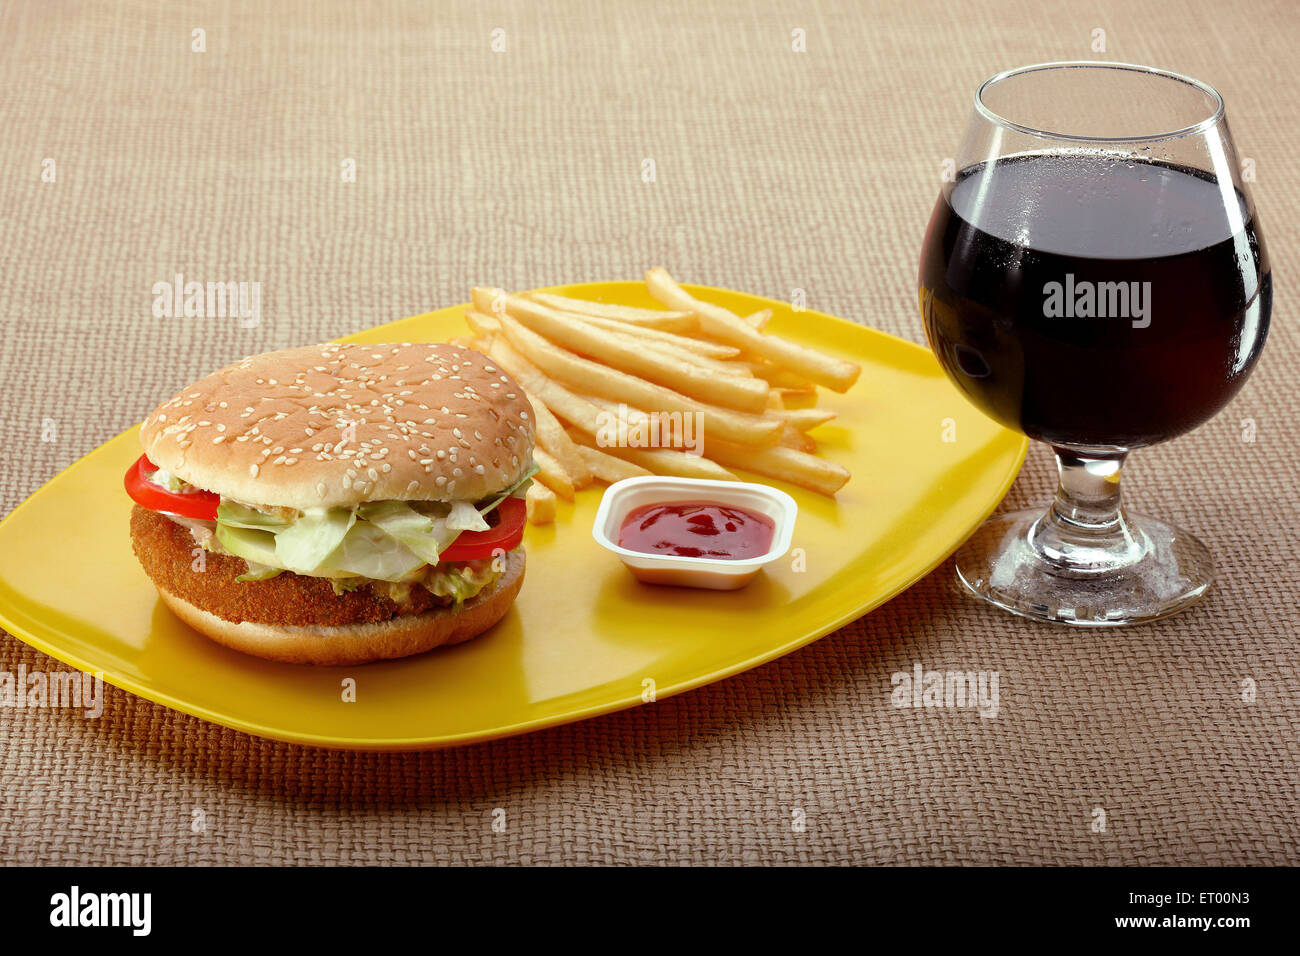 Fast food vegetarian burger with french fries with sauce and cola ; India - Stock Image